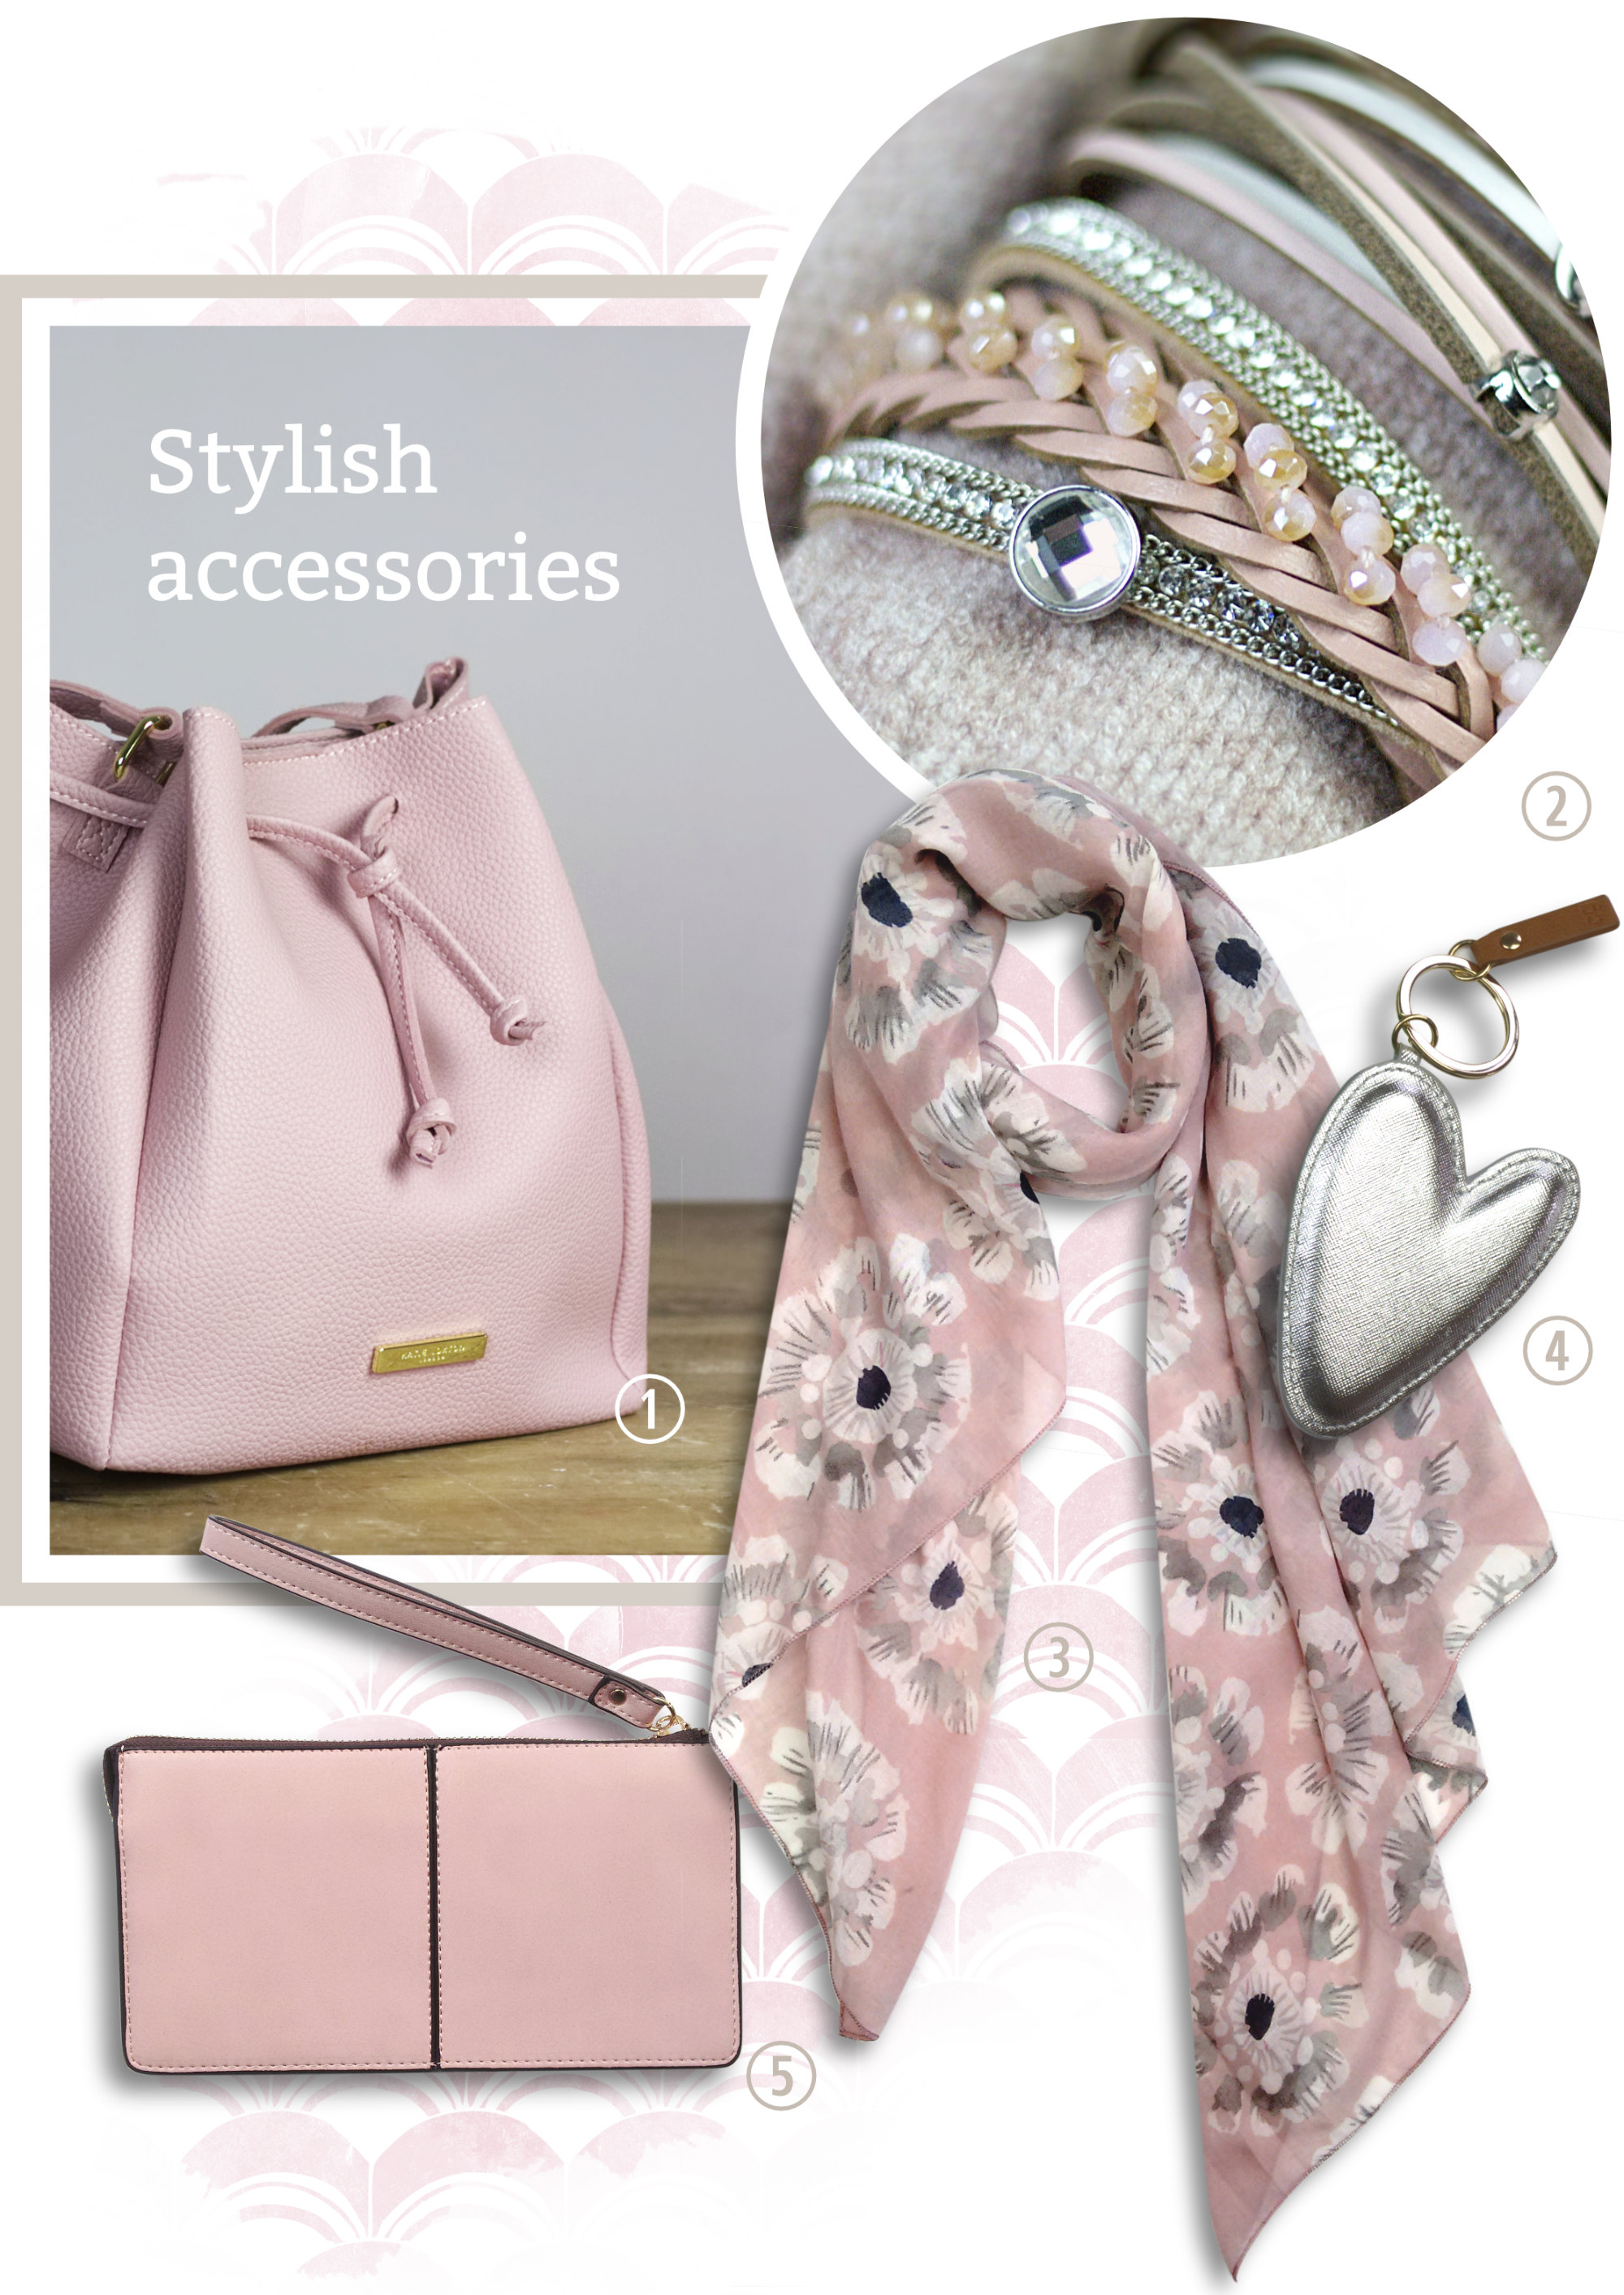 Stylish accessories. A pink handbag and purse, a scarf and bracelets.